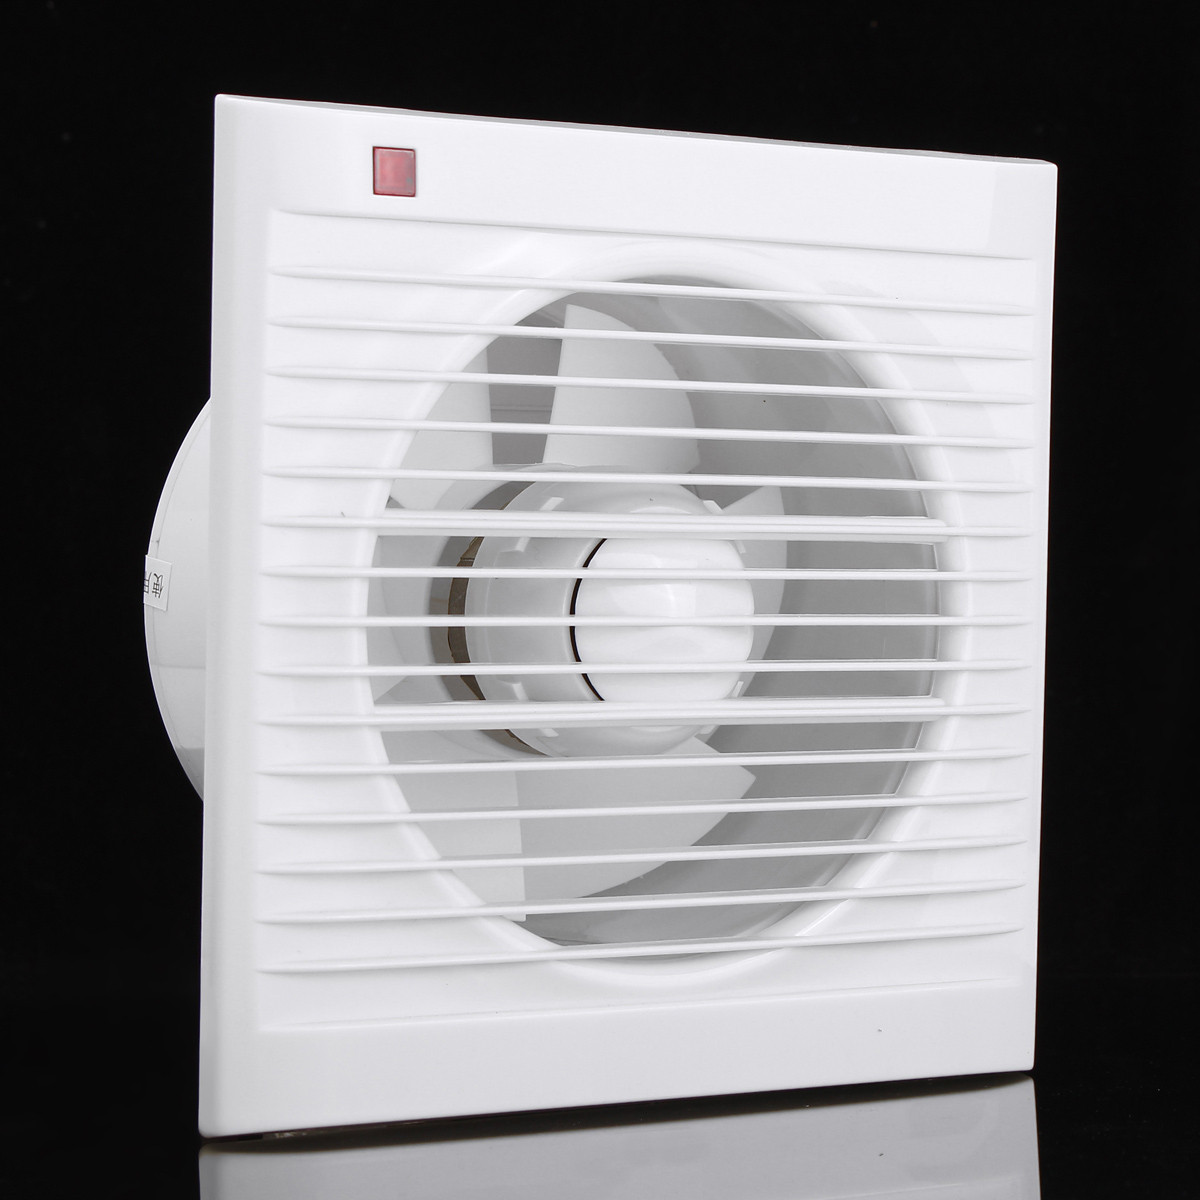 4 6 8 Waterproof Mute Bathroom Extractor Exhaust Fan